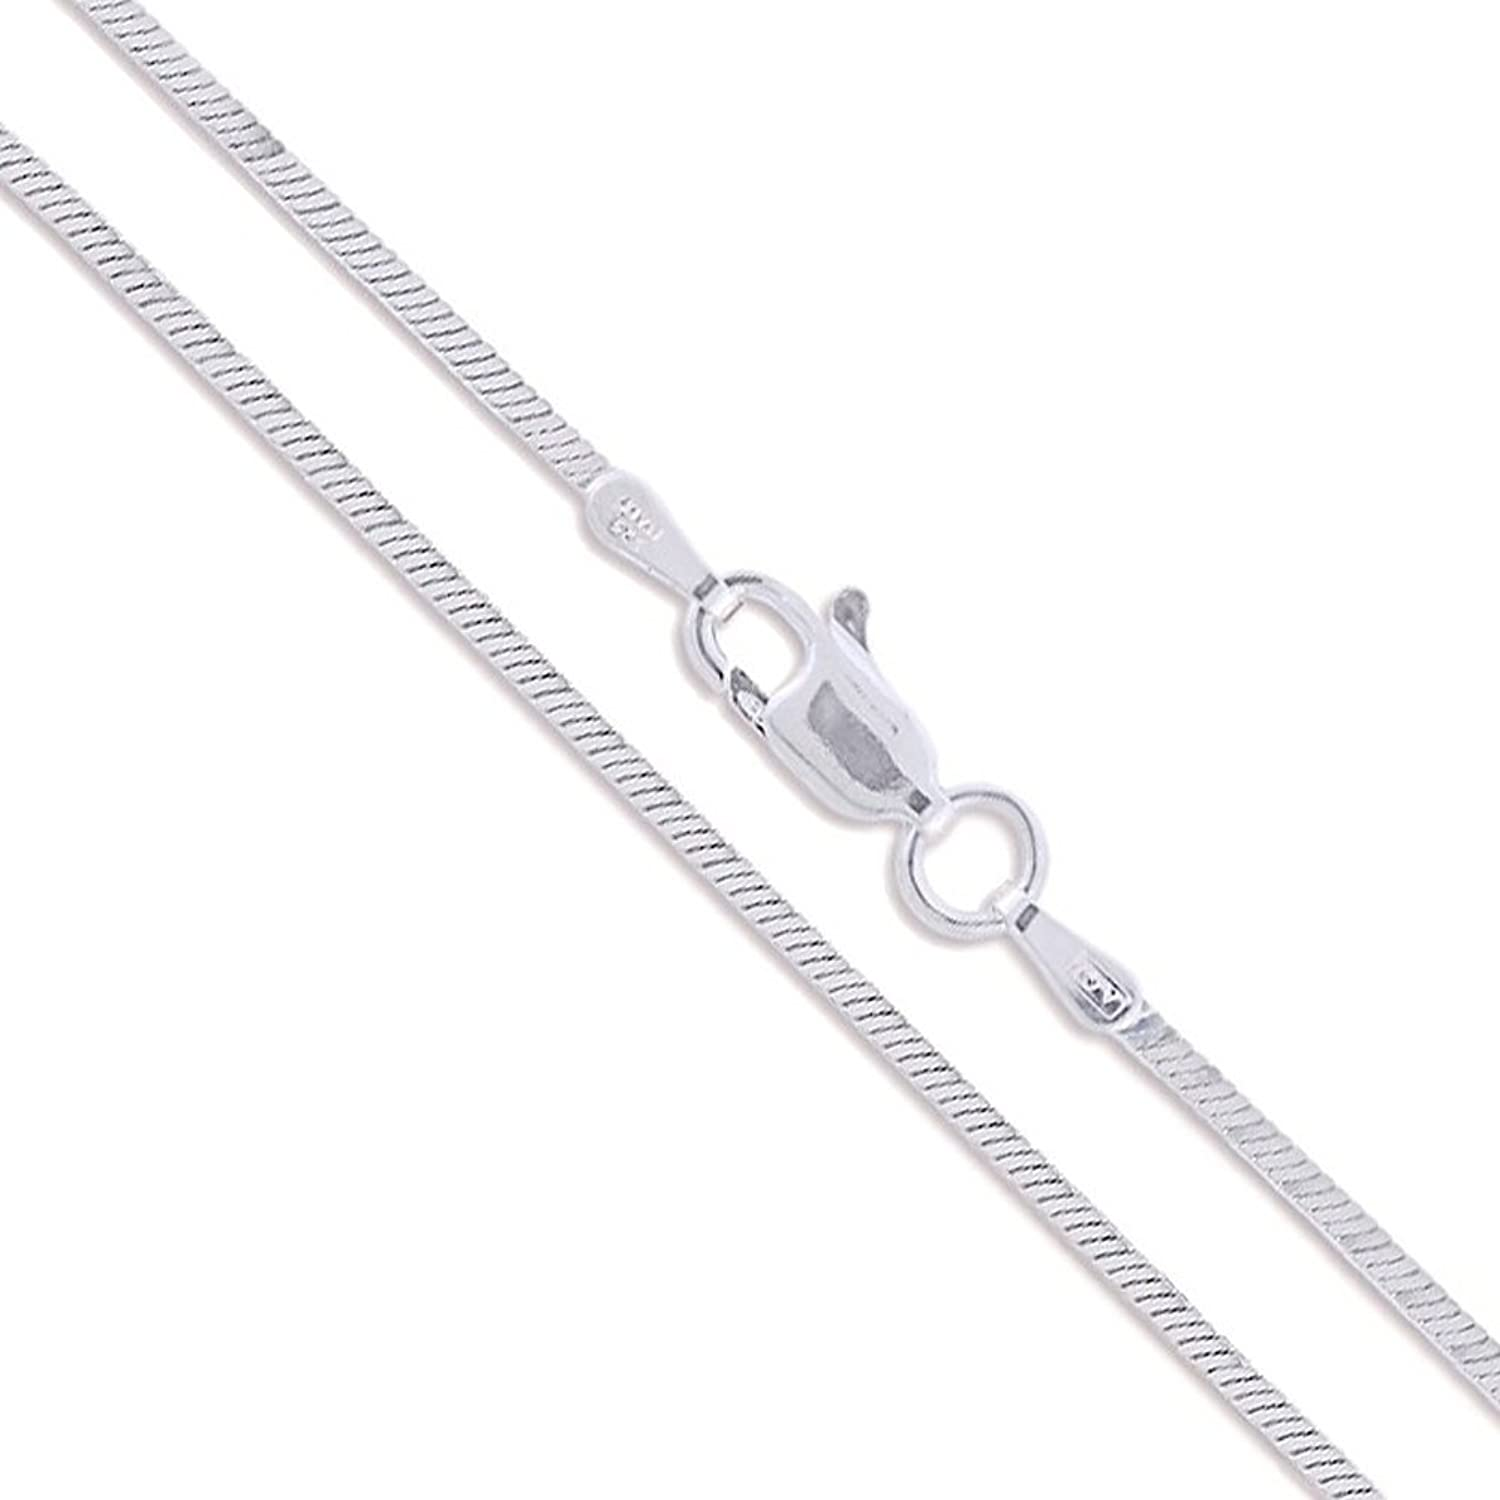 Sterling Silver Magic Snake Chain 1mm Solid 925 Italy New Brazilian Necklace AMgcME8